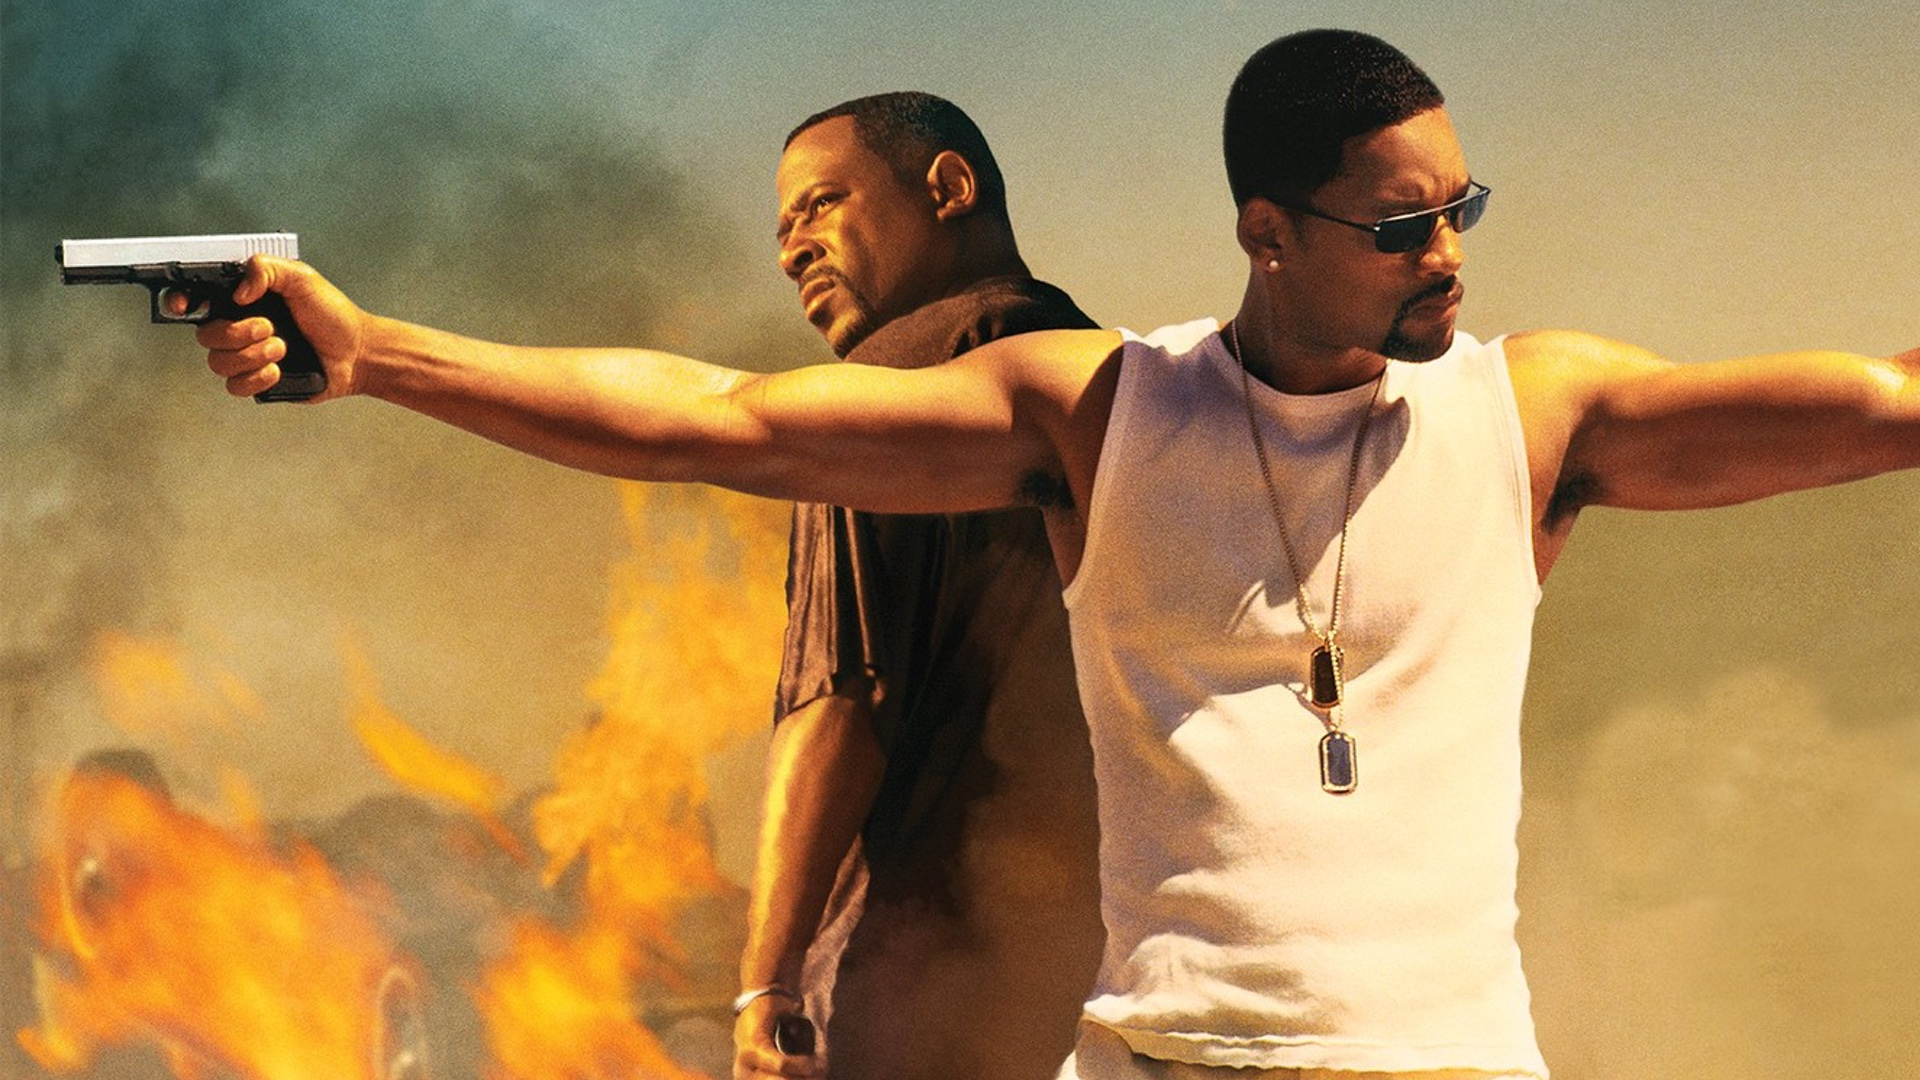 Bad I Set Bad Boys 3 Is Set To Start Shooting Early Next Year Geektyrant